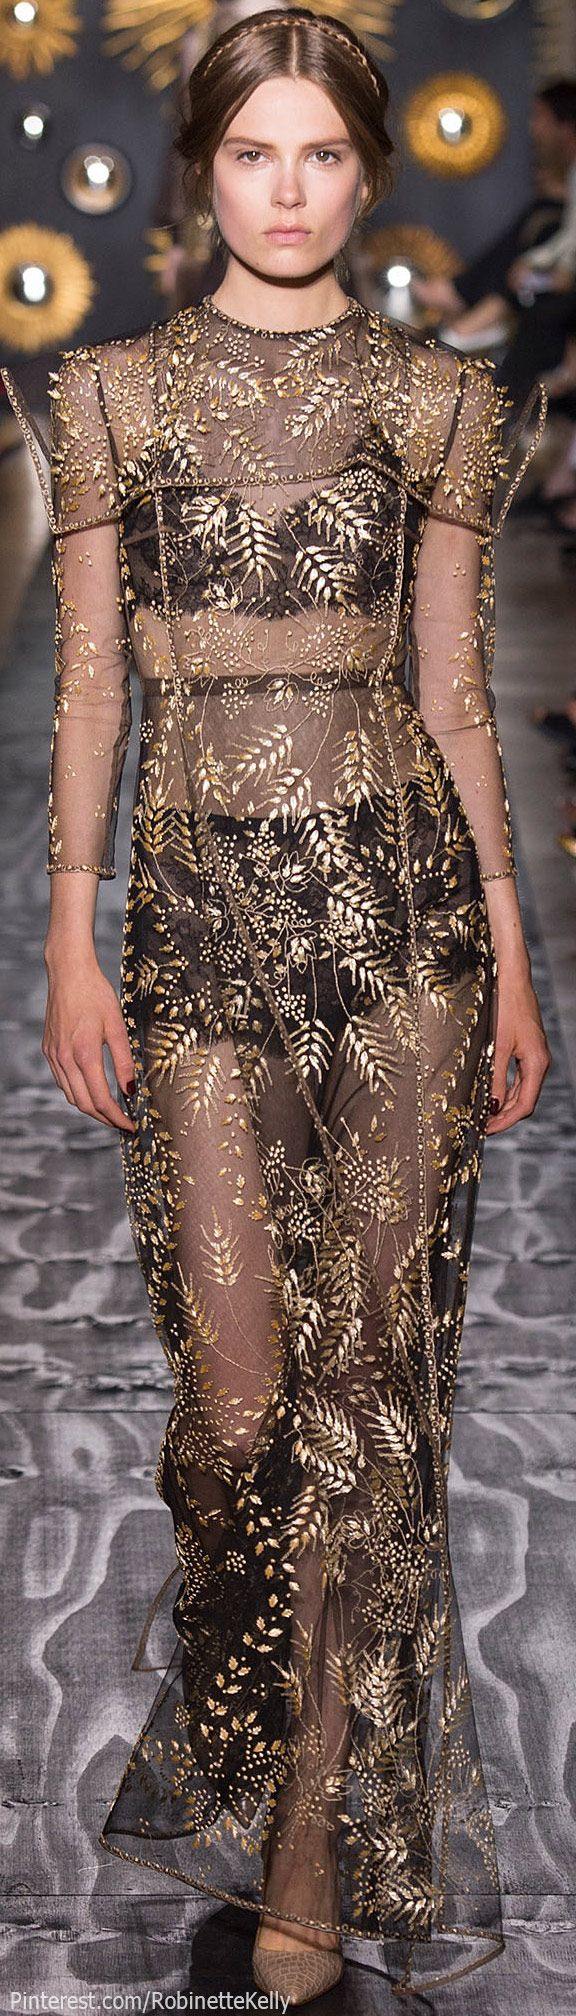 Valentino Haute Couture visible panty line and bra line.